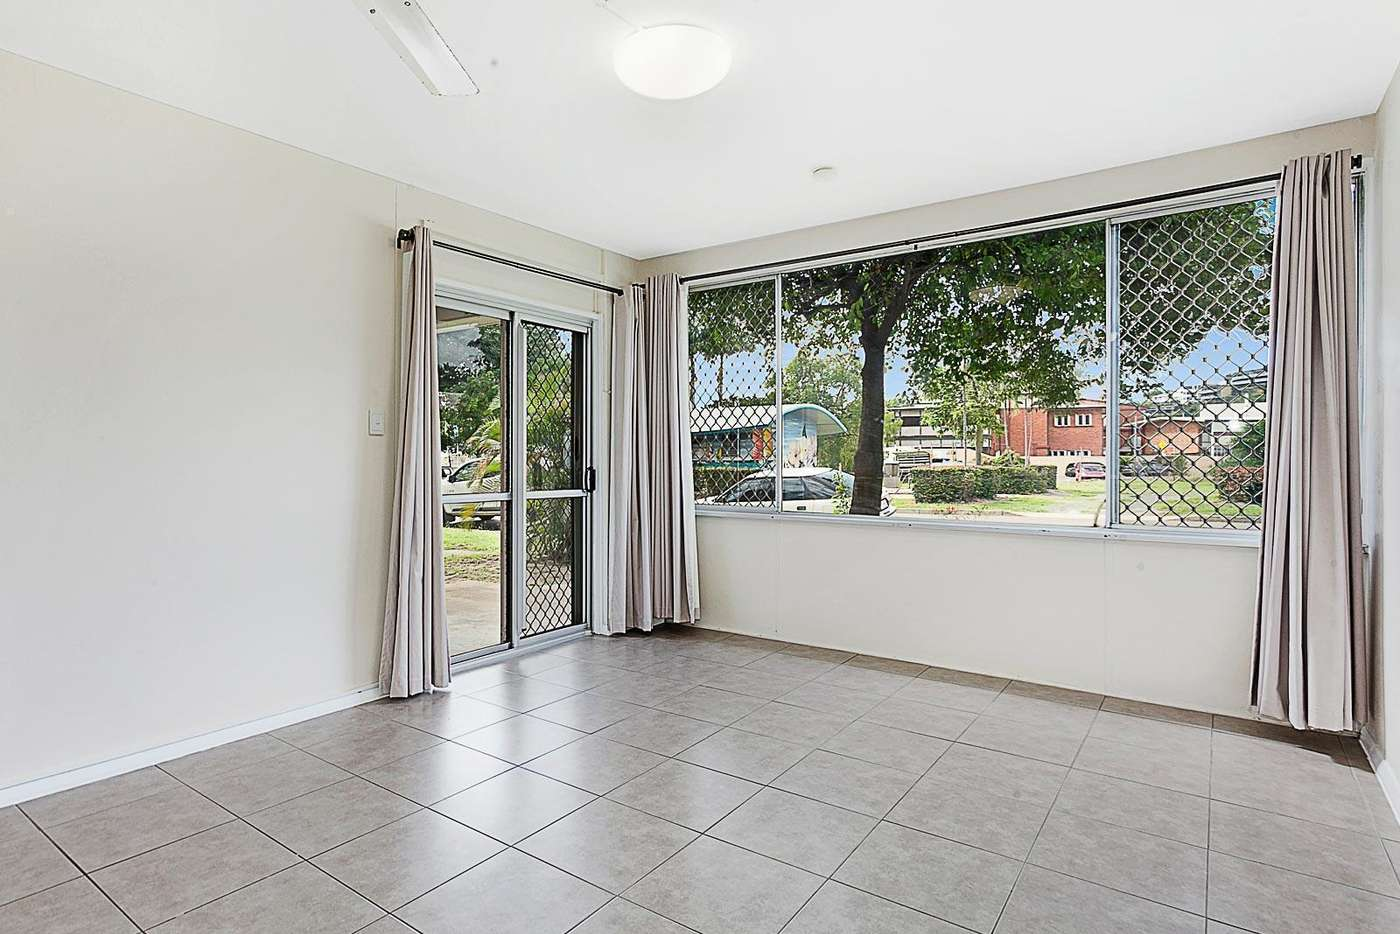 Main view of Homely apartment listing, 1/47 The Strand, North Ward QLD 4810